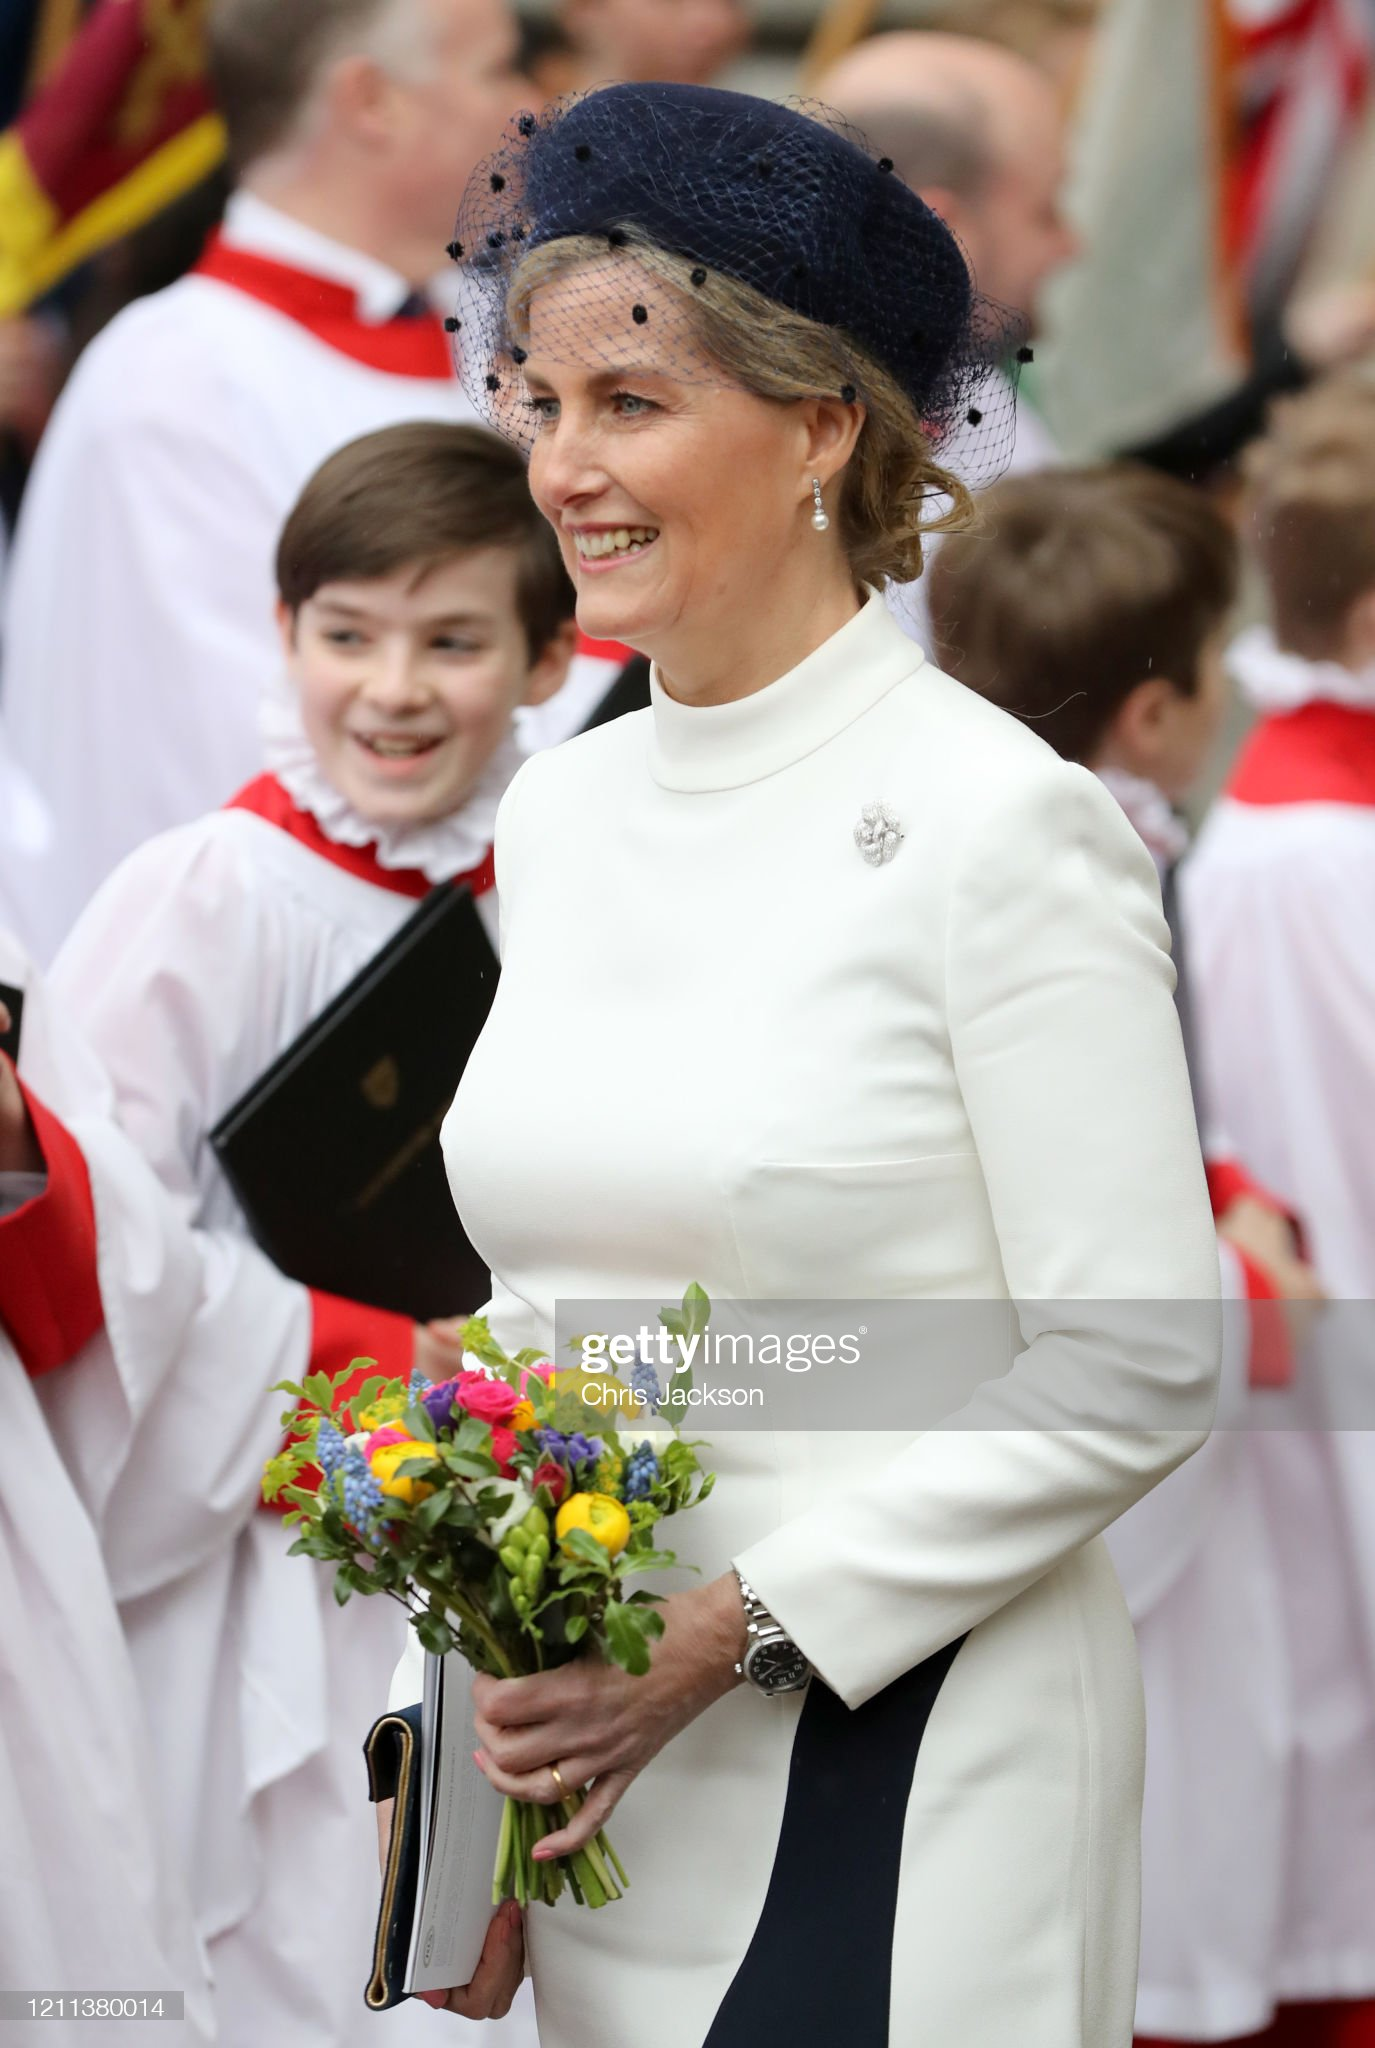 https://media.gettyimages.com/photos/sophie-countess-of-wessex-departs-the-commonwealth-day-service-2020-picture-id1211380014?s=2048x2048